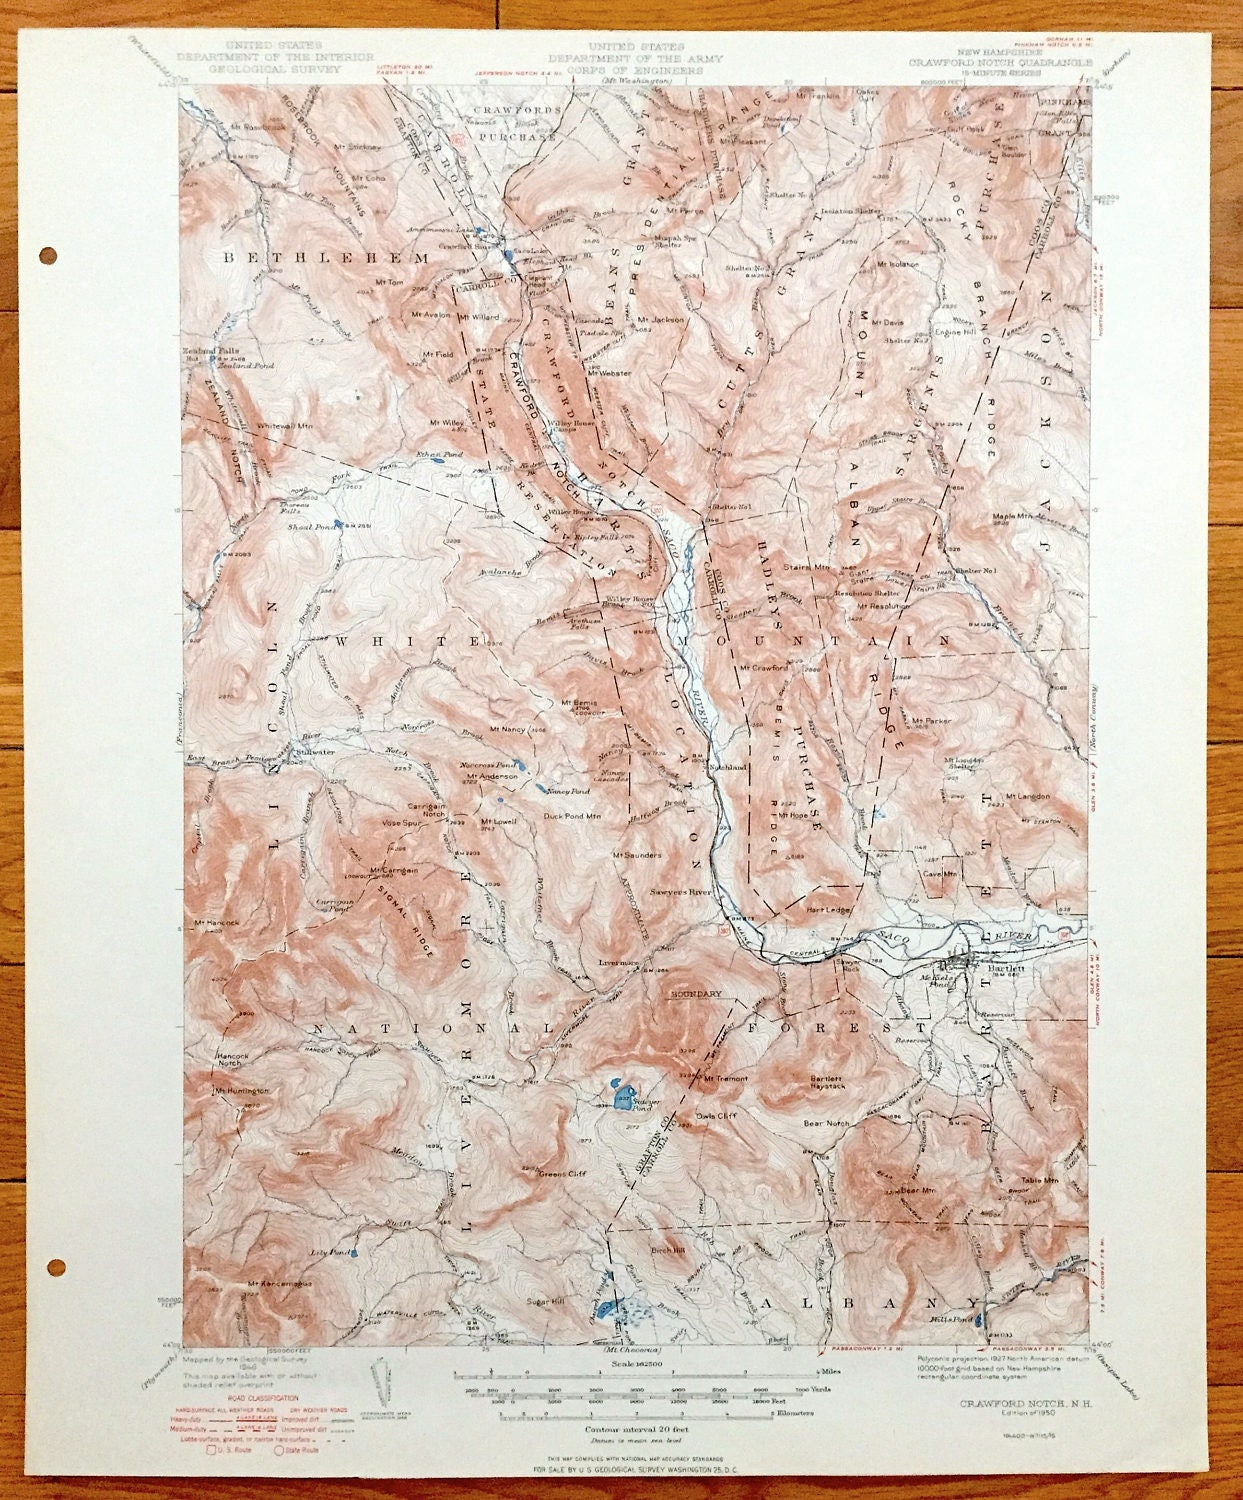 Antique Crawford Notch New Hampshire 1950 US Geological